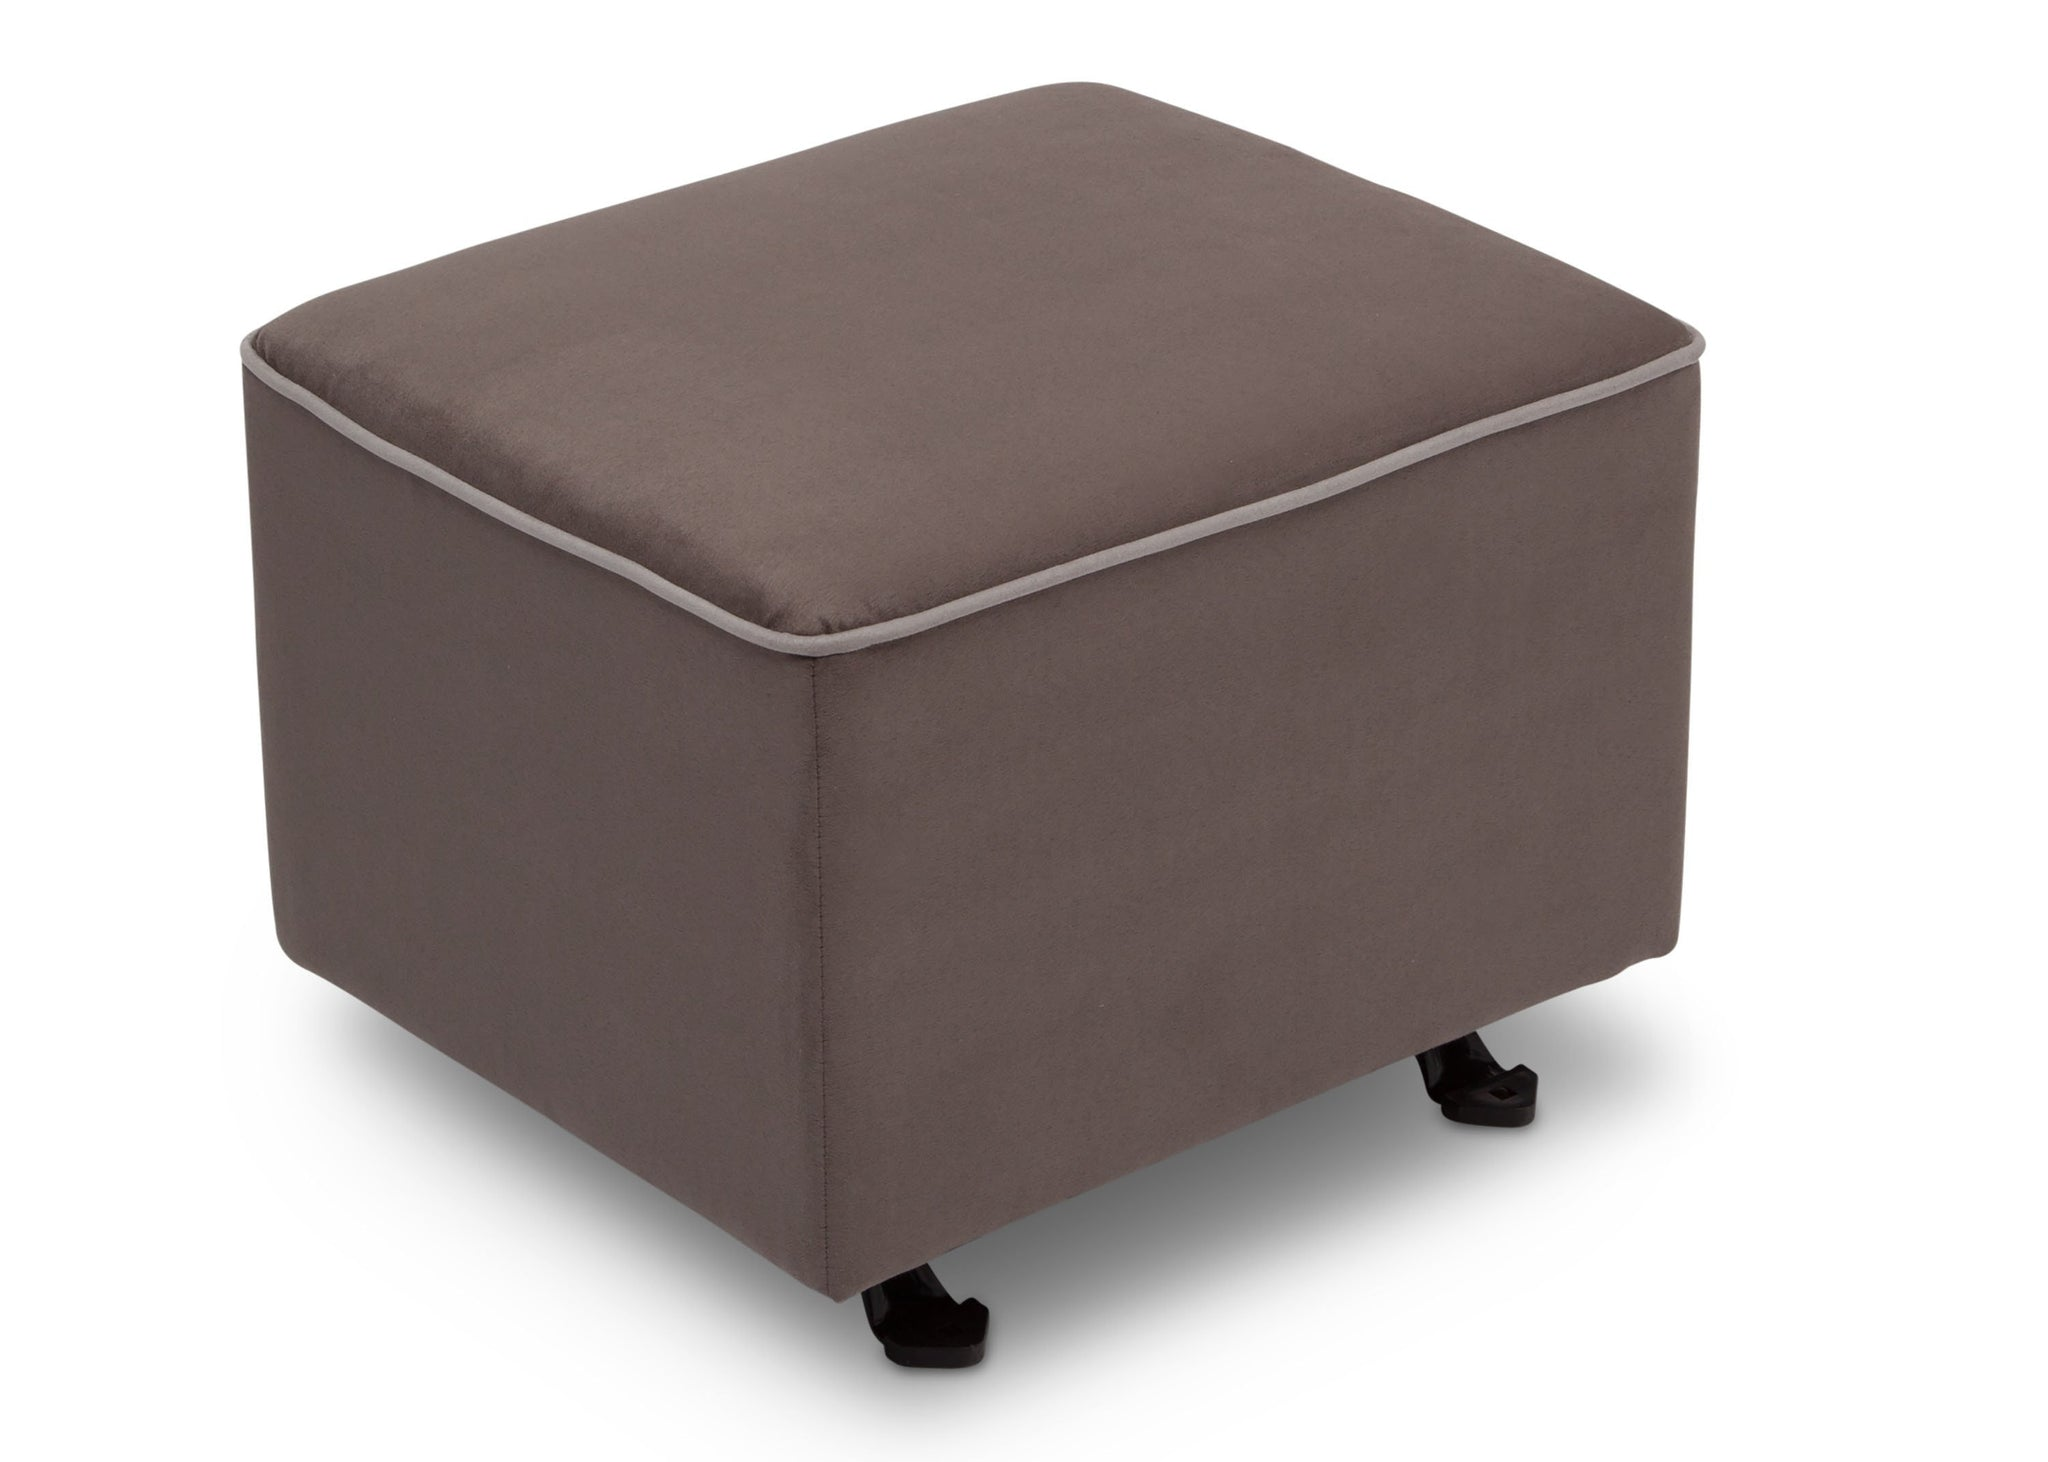 Delta Children Graphite with Dove Grey Welt (944) Nursery Gliding Ottoman (501220), Sideview, d3d